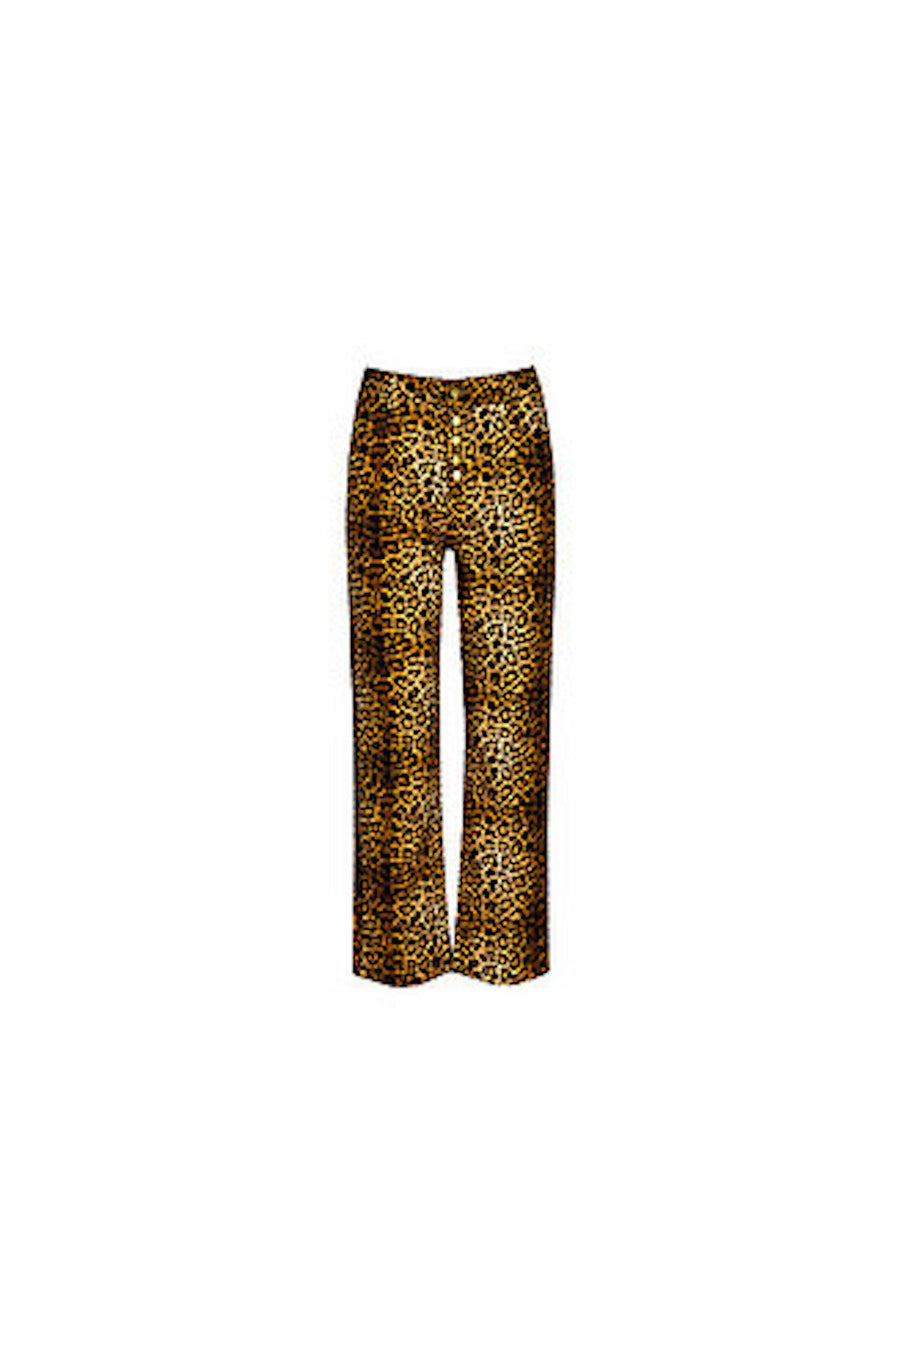 Jungle Jessie | Leopard Print | jeans NZ | HOUSE OF SUNNY NZ | Black Box Boutique Auckland | Womens Fashion NZ